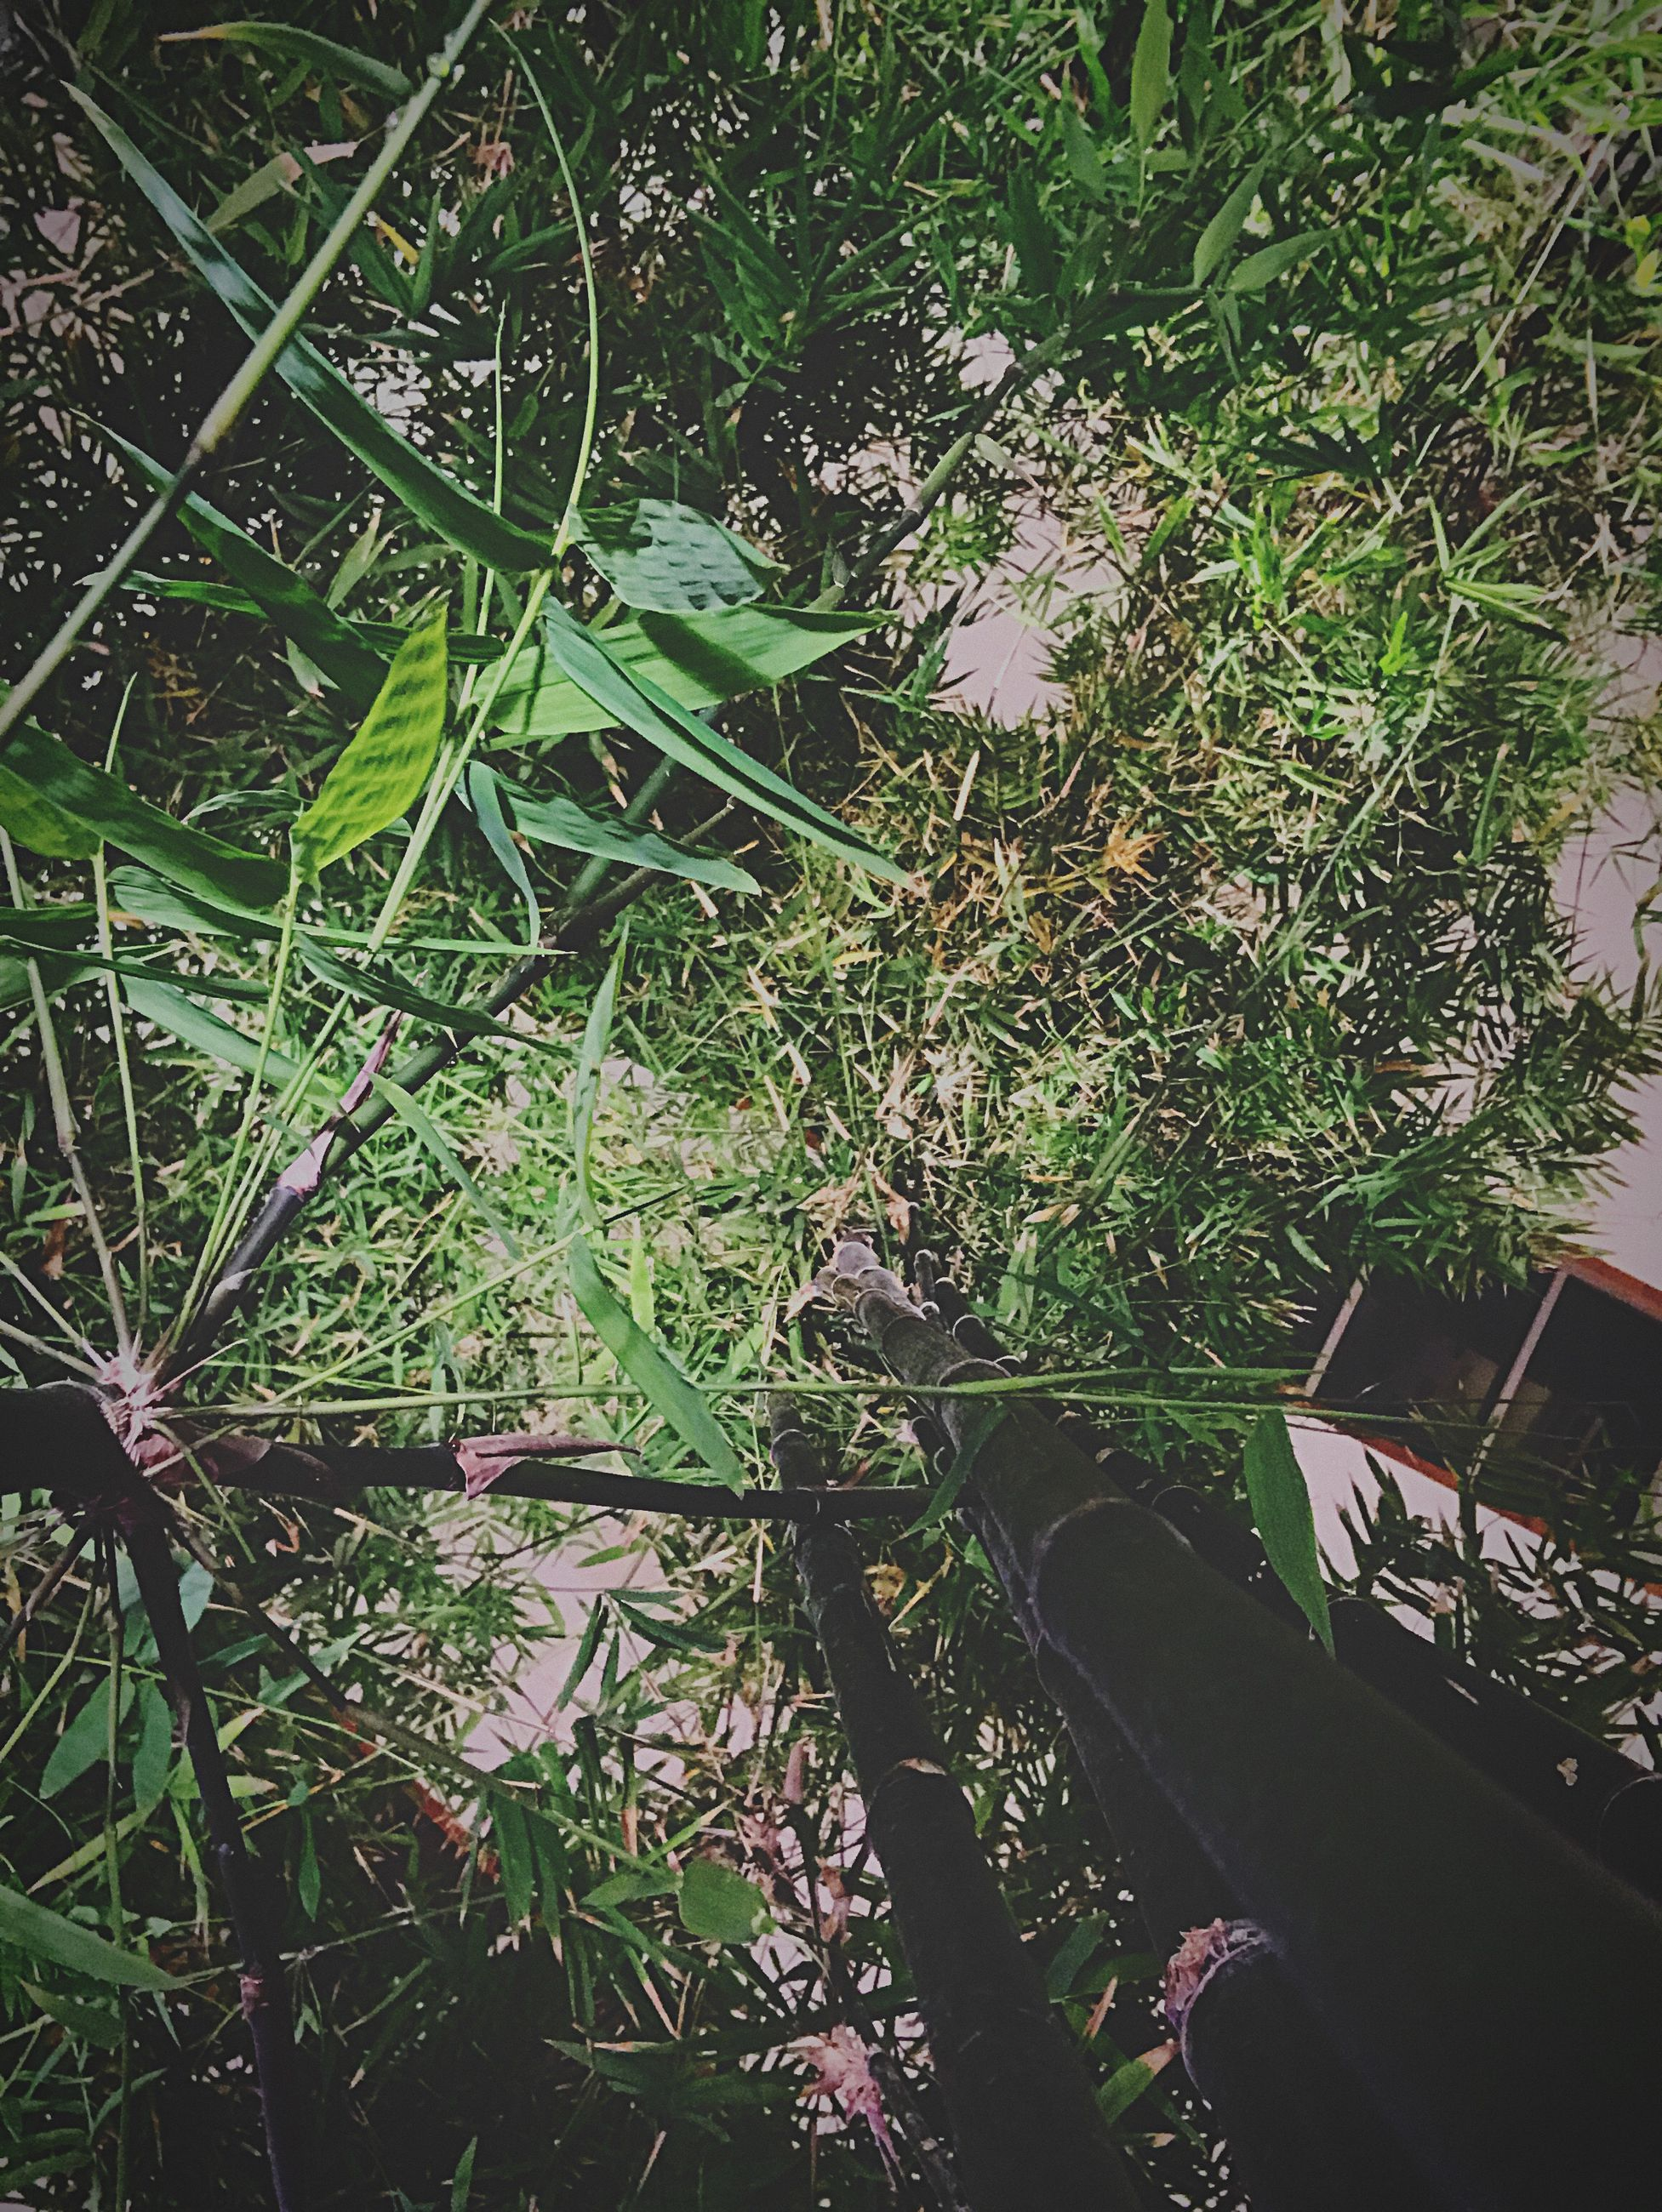 growth, plant, nature, grass, leaf, no people, high angle view, day, forest, vegetation, outdoors, green color, tree, beauty in nature